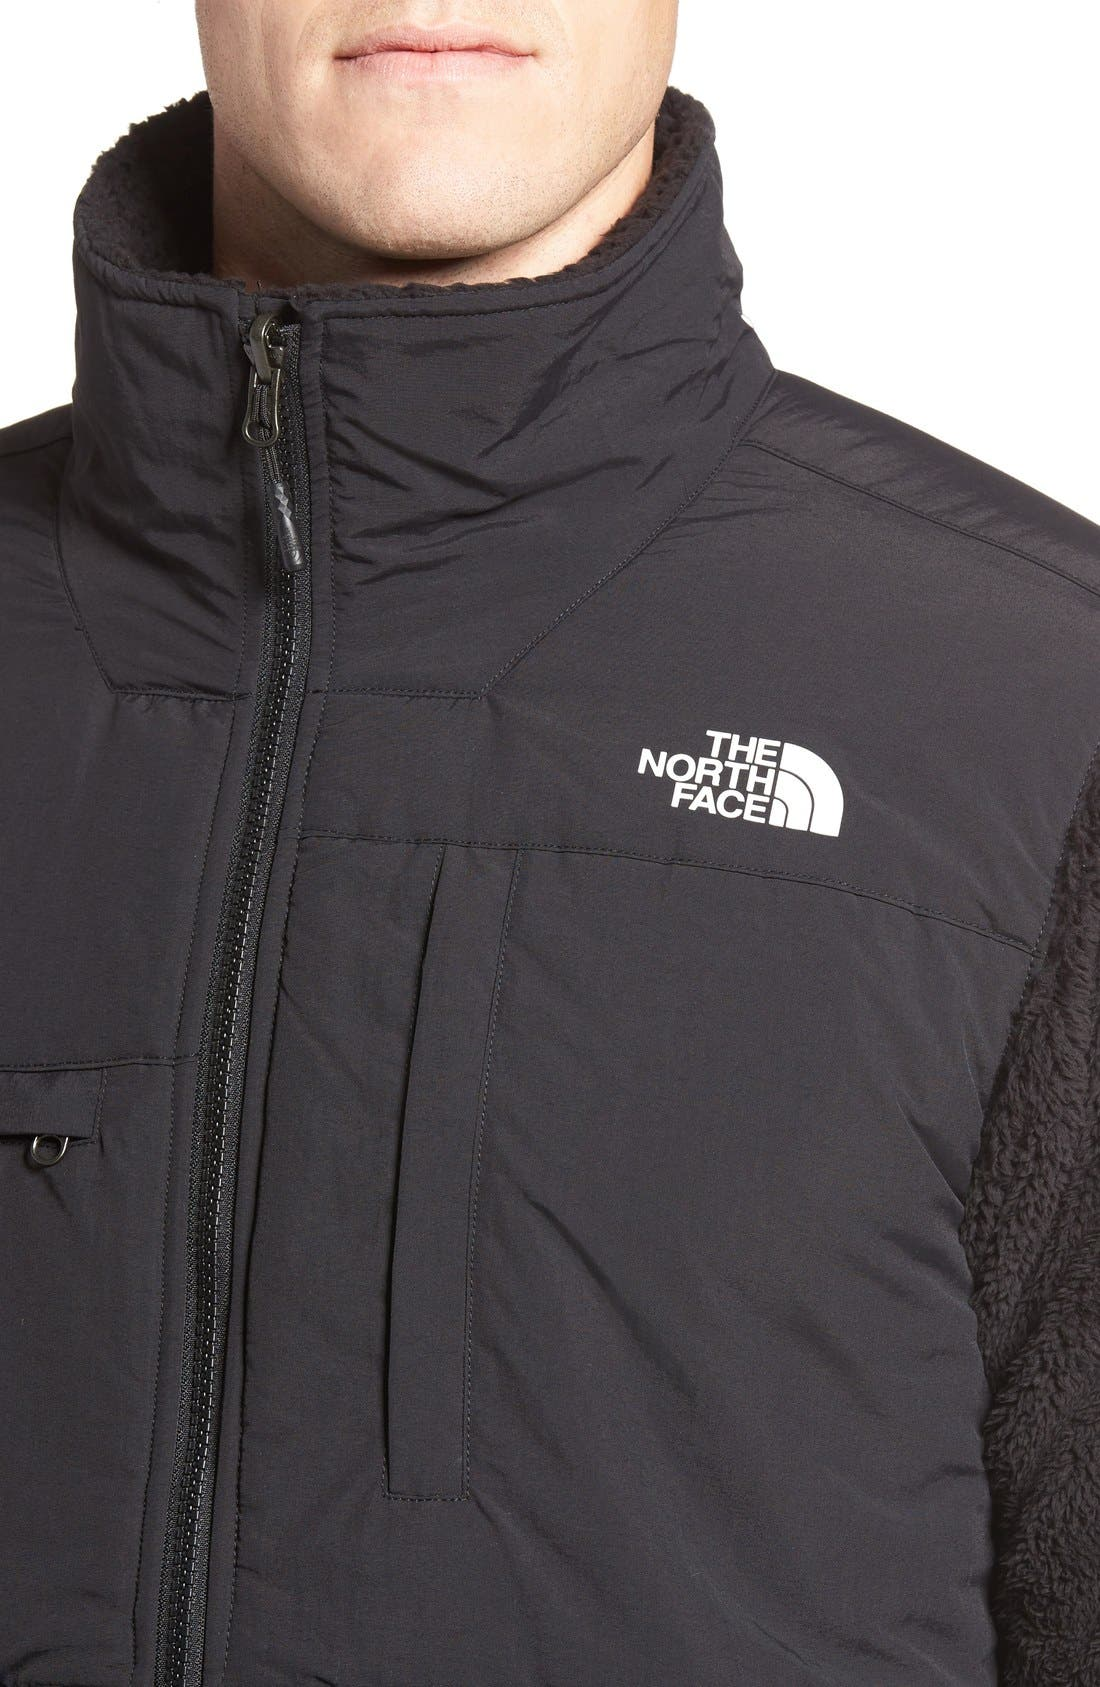 Novelty Denali Jacket,                             Alternate thumbnail 4, color,                             Tnf Black Sherpa/ Tnf Black